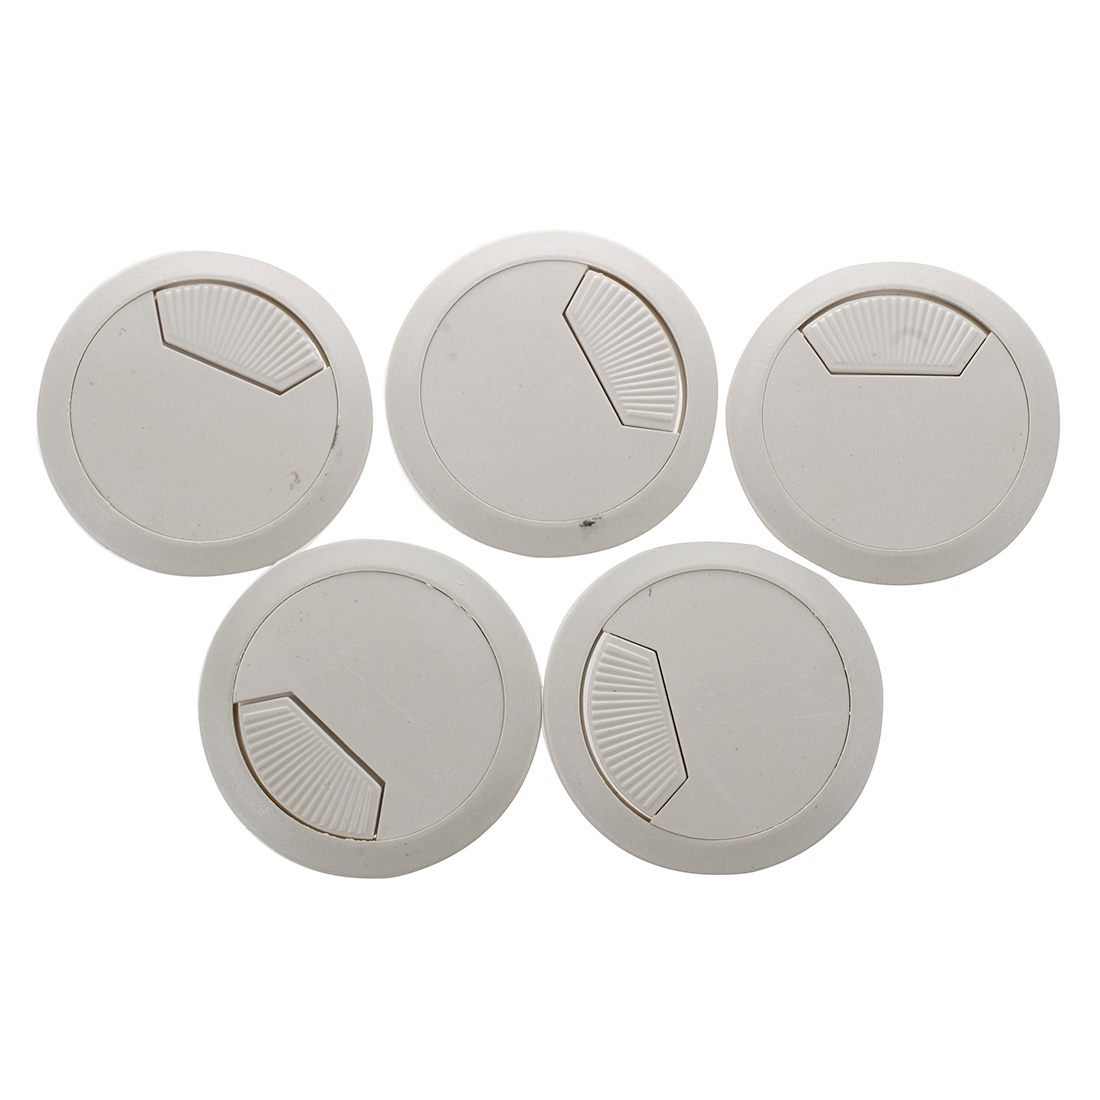 Promotion! 5 Piece Office Desk Table Computer 60 Mm Cable Pin Hole Cover- Gray Hard Plastic